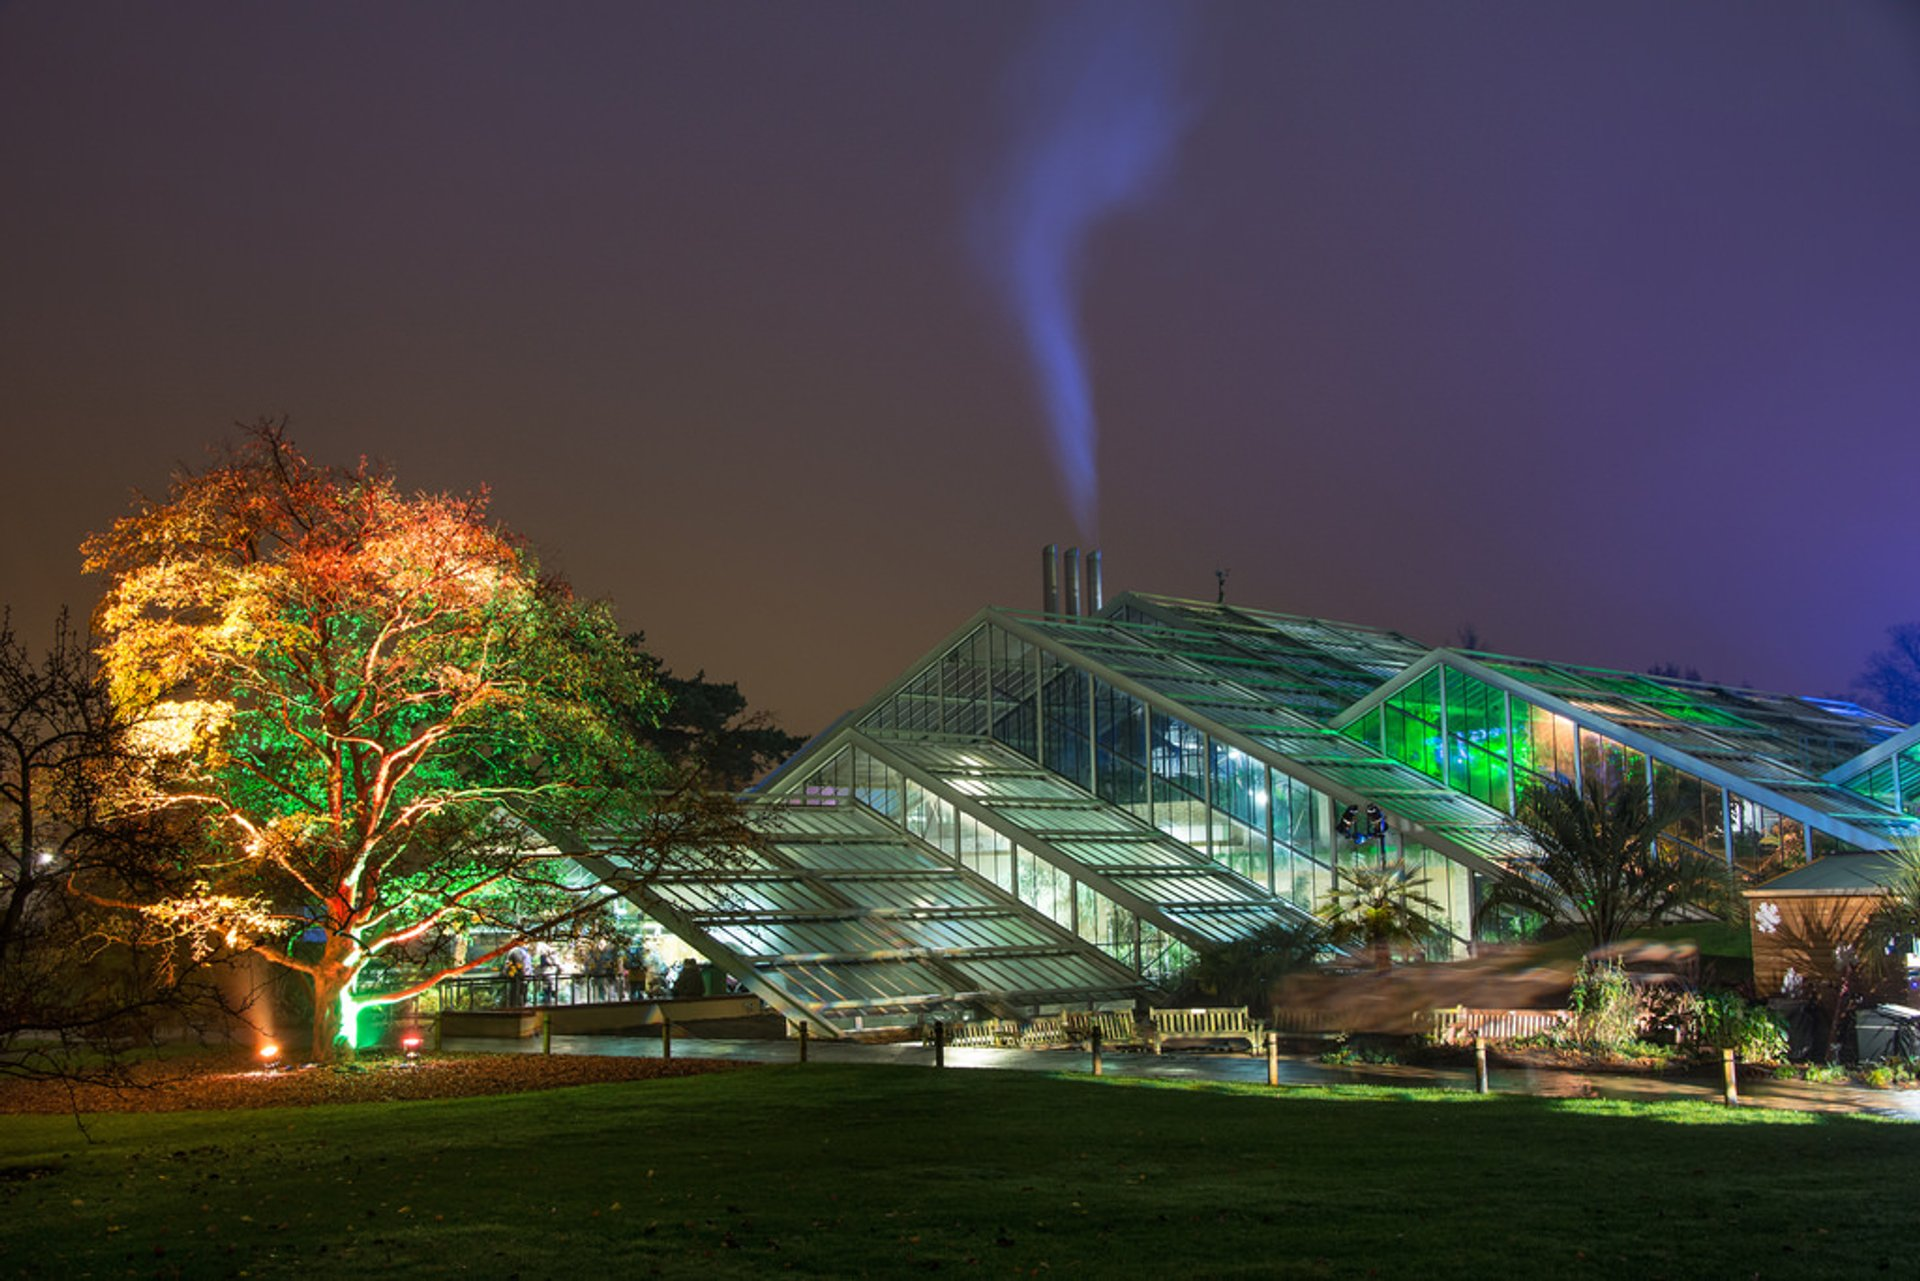 Illuminated trail across Kew Gardens 2020